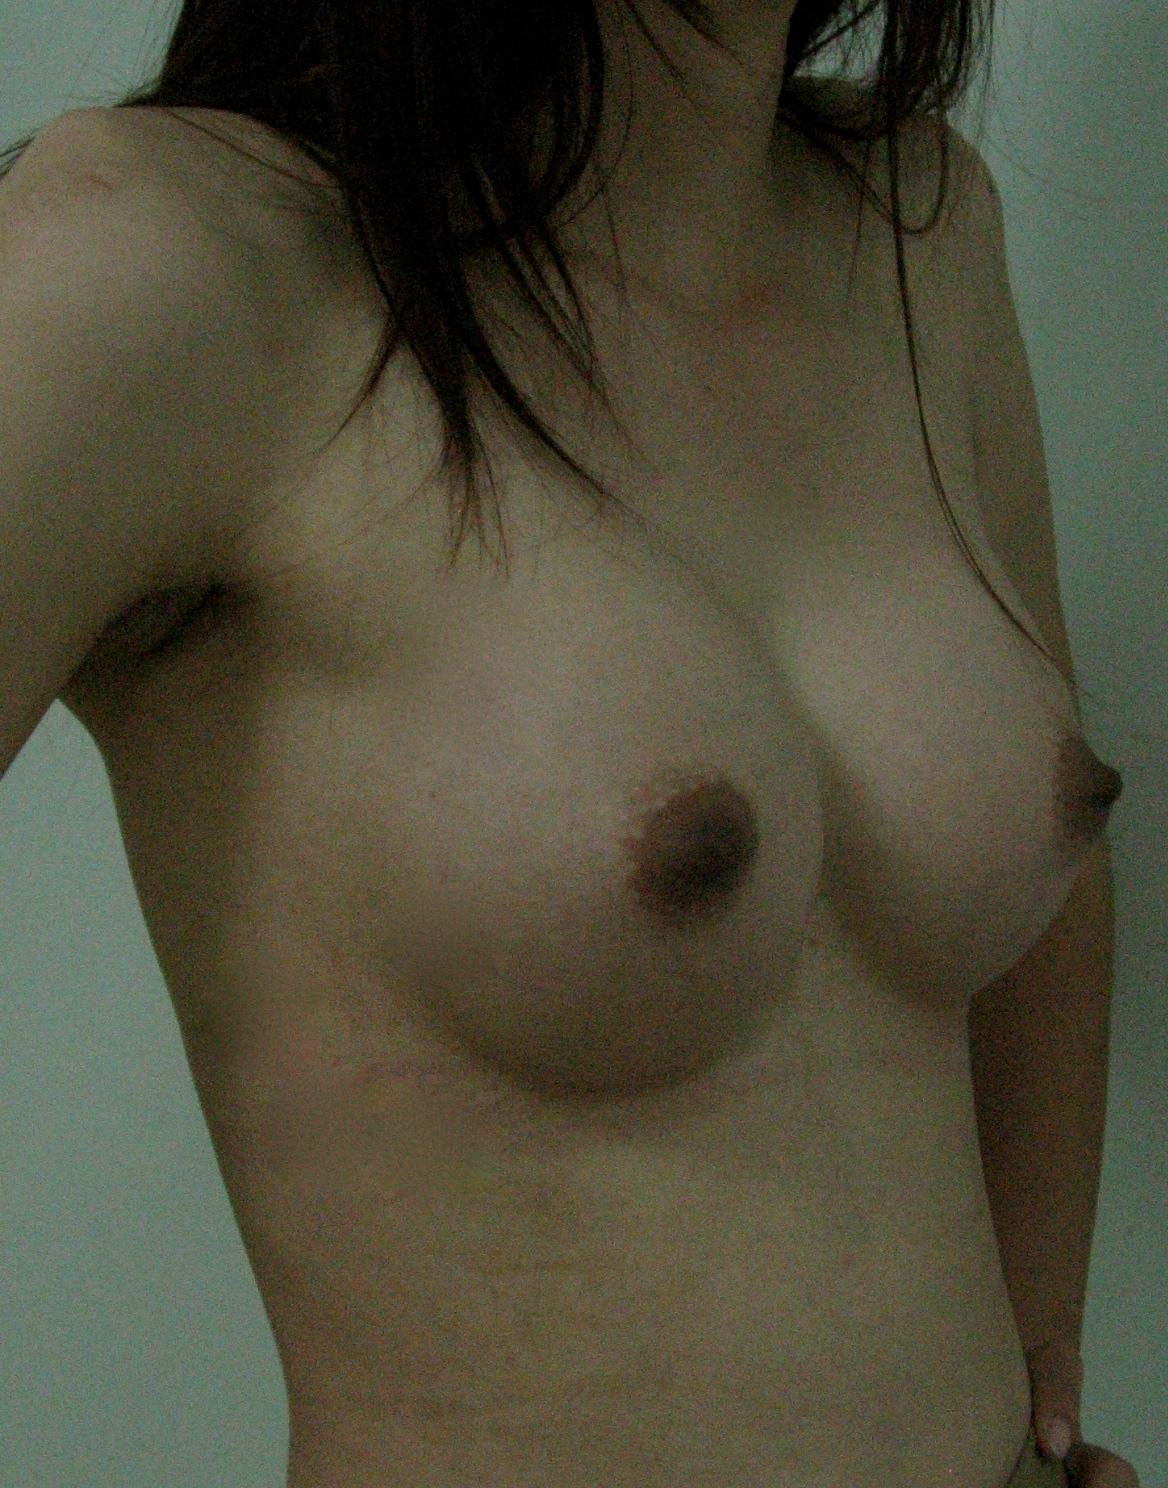 Transsexual breast developement pictures commit